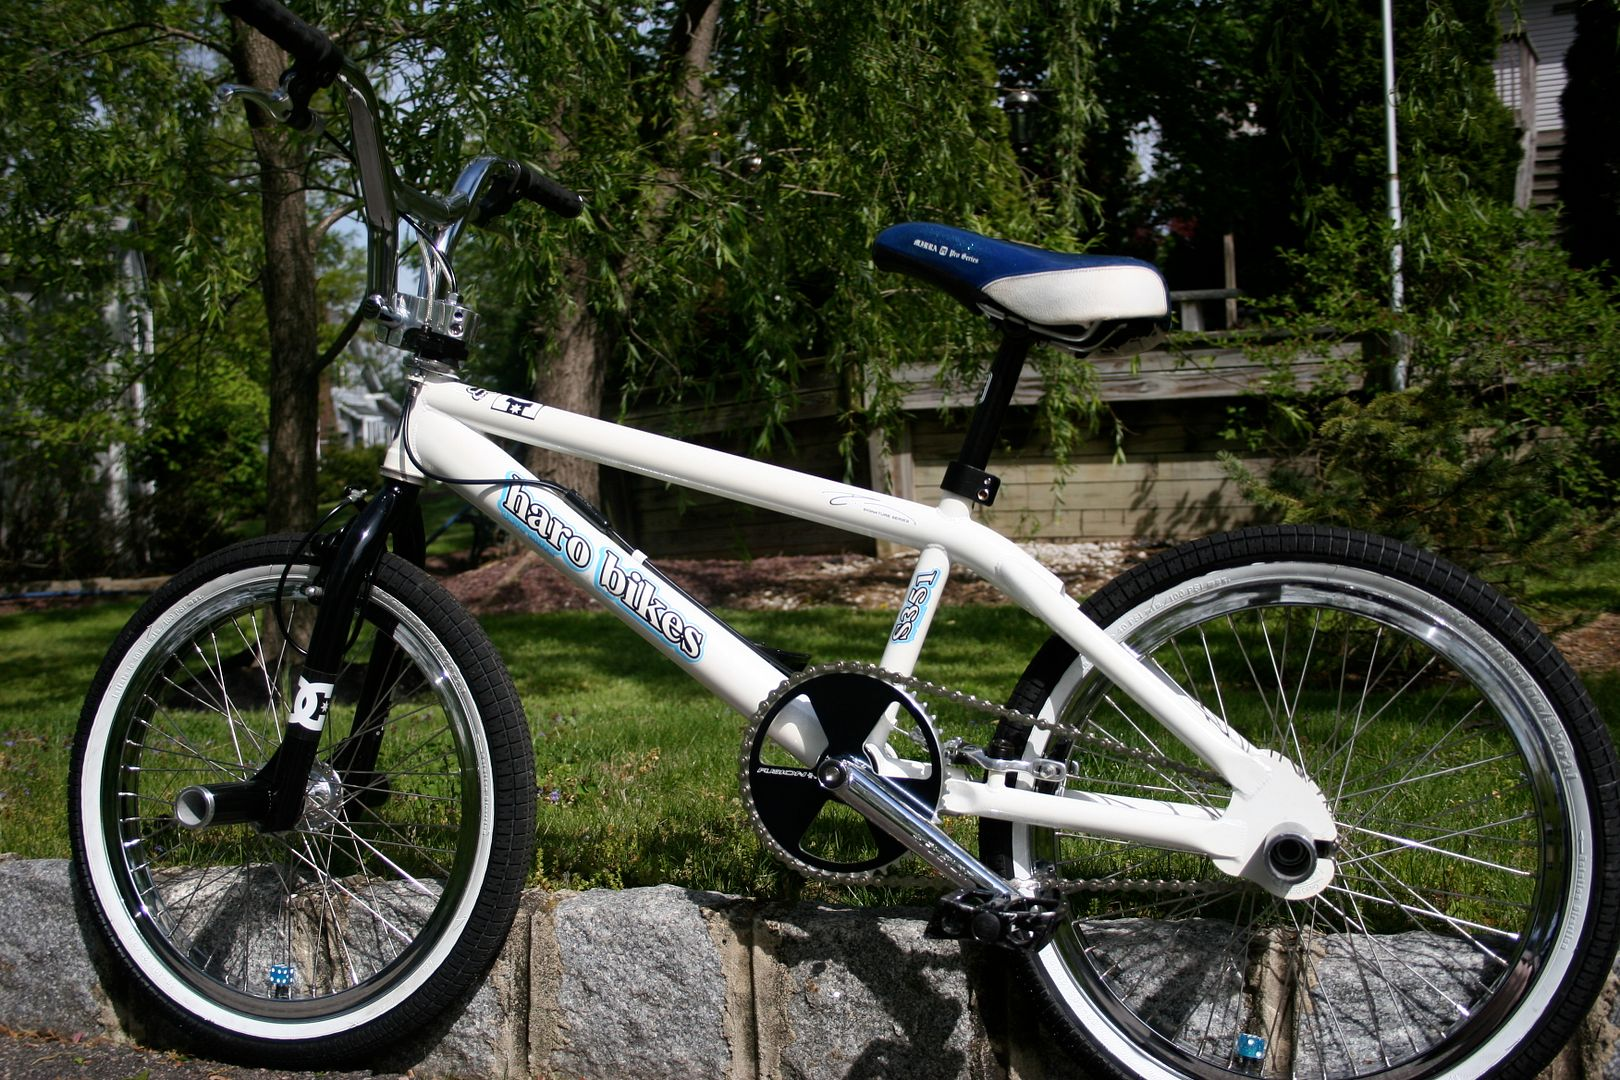 http://i853.photobucket.com/albums/ab99/flatlandfox/Dave%20Mirra%20Haro/IMG_0050.jpg